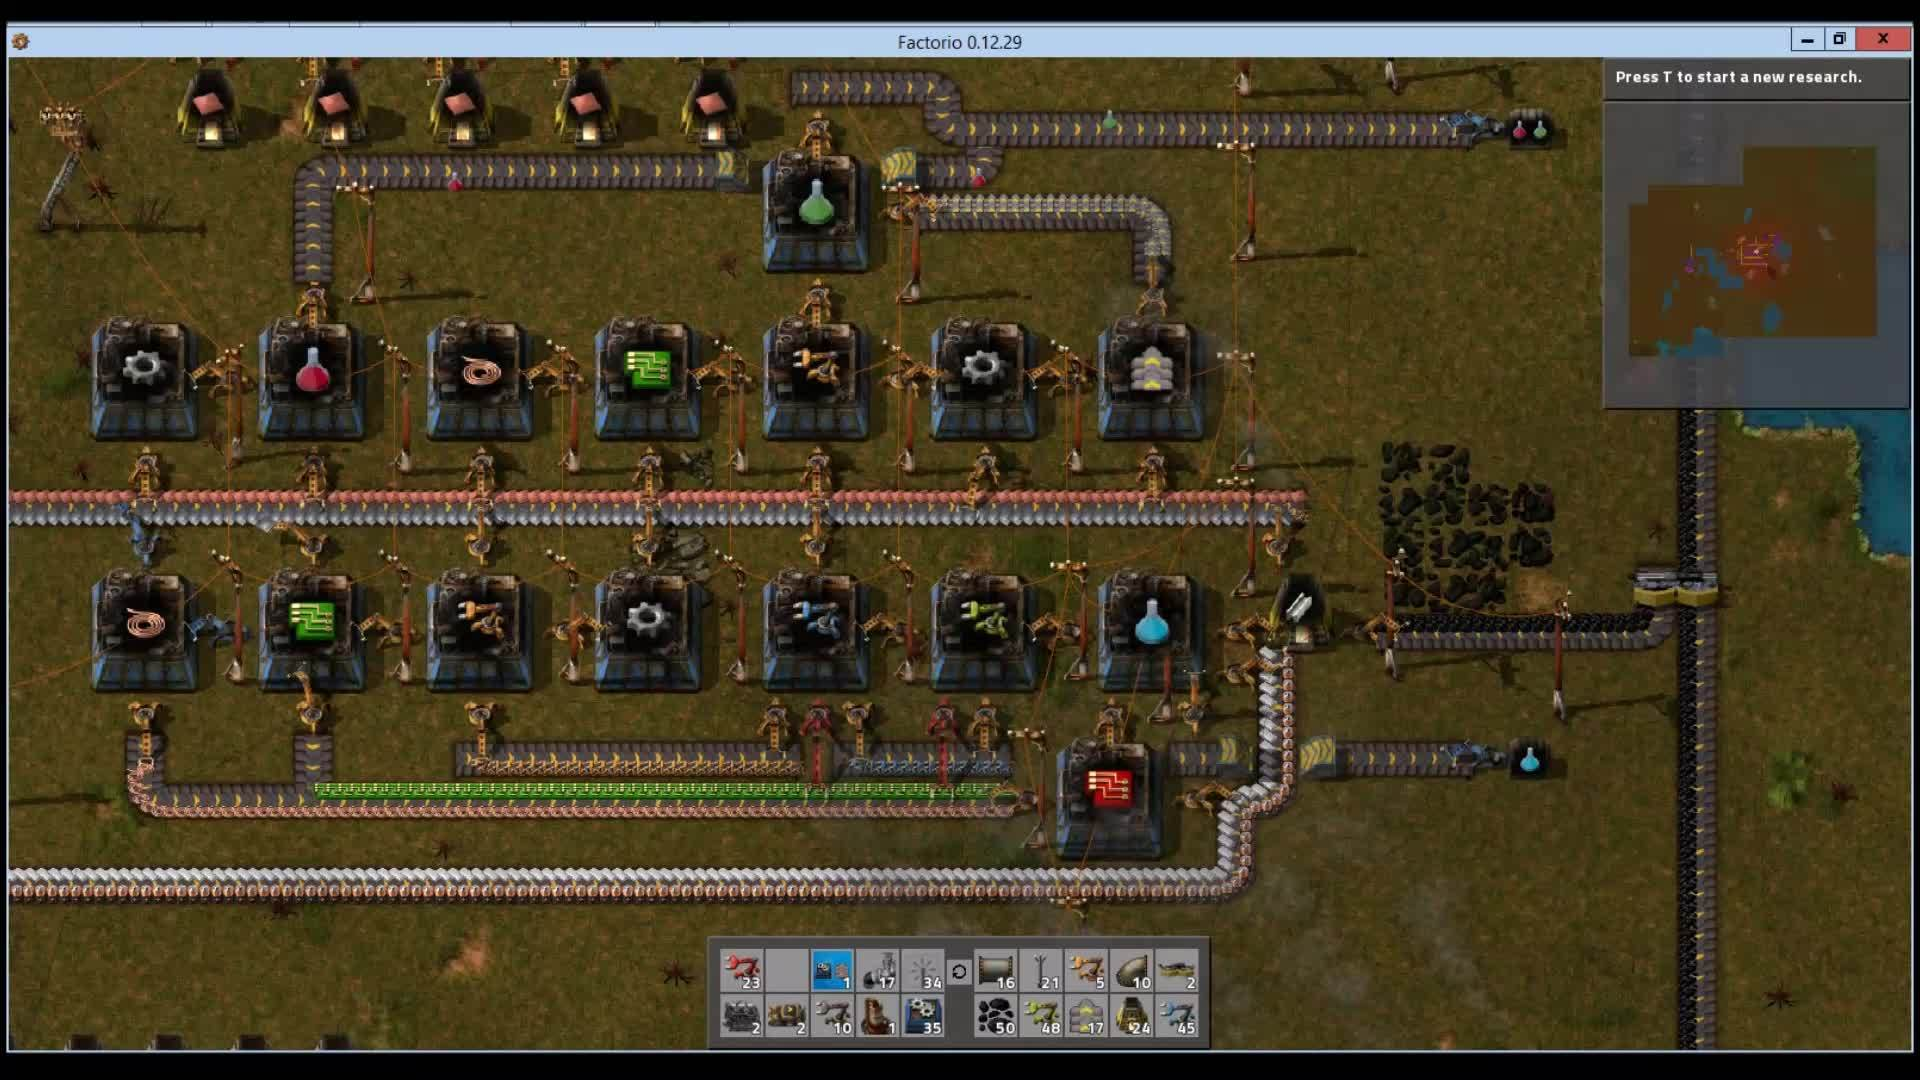 Science Pack Factory (Factorio) | Find, Make U0026 Share Gfycat GIFs